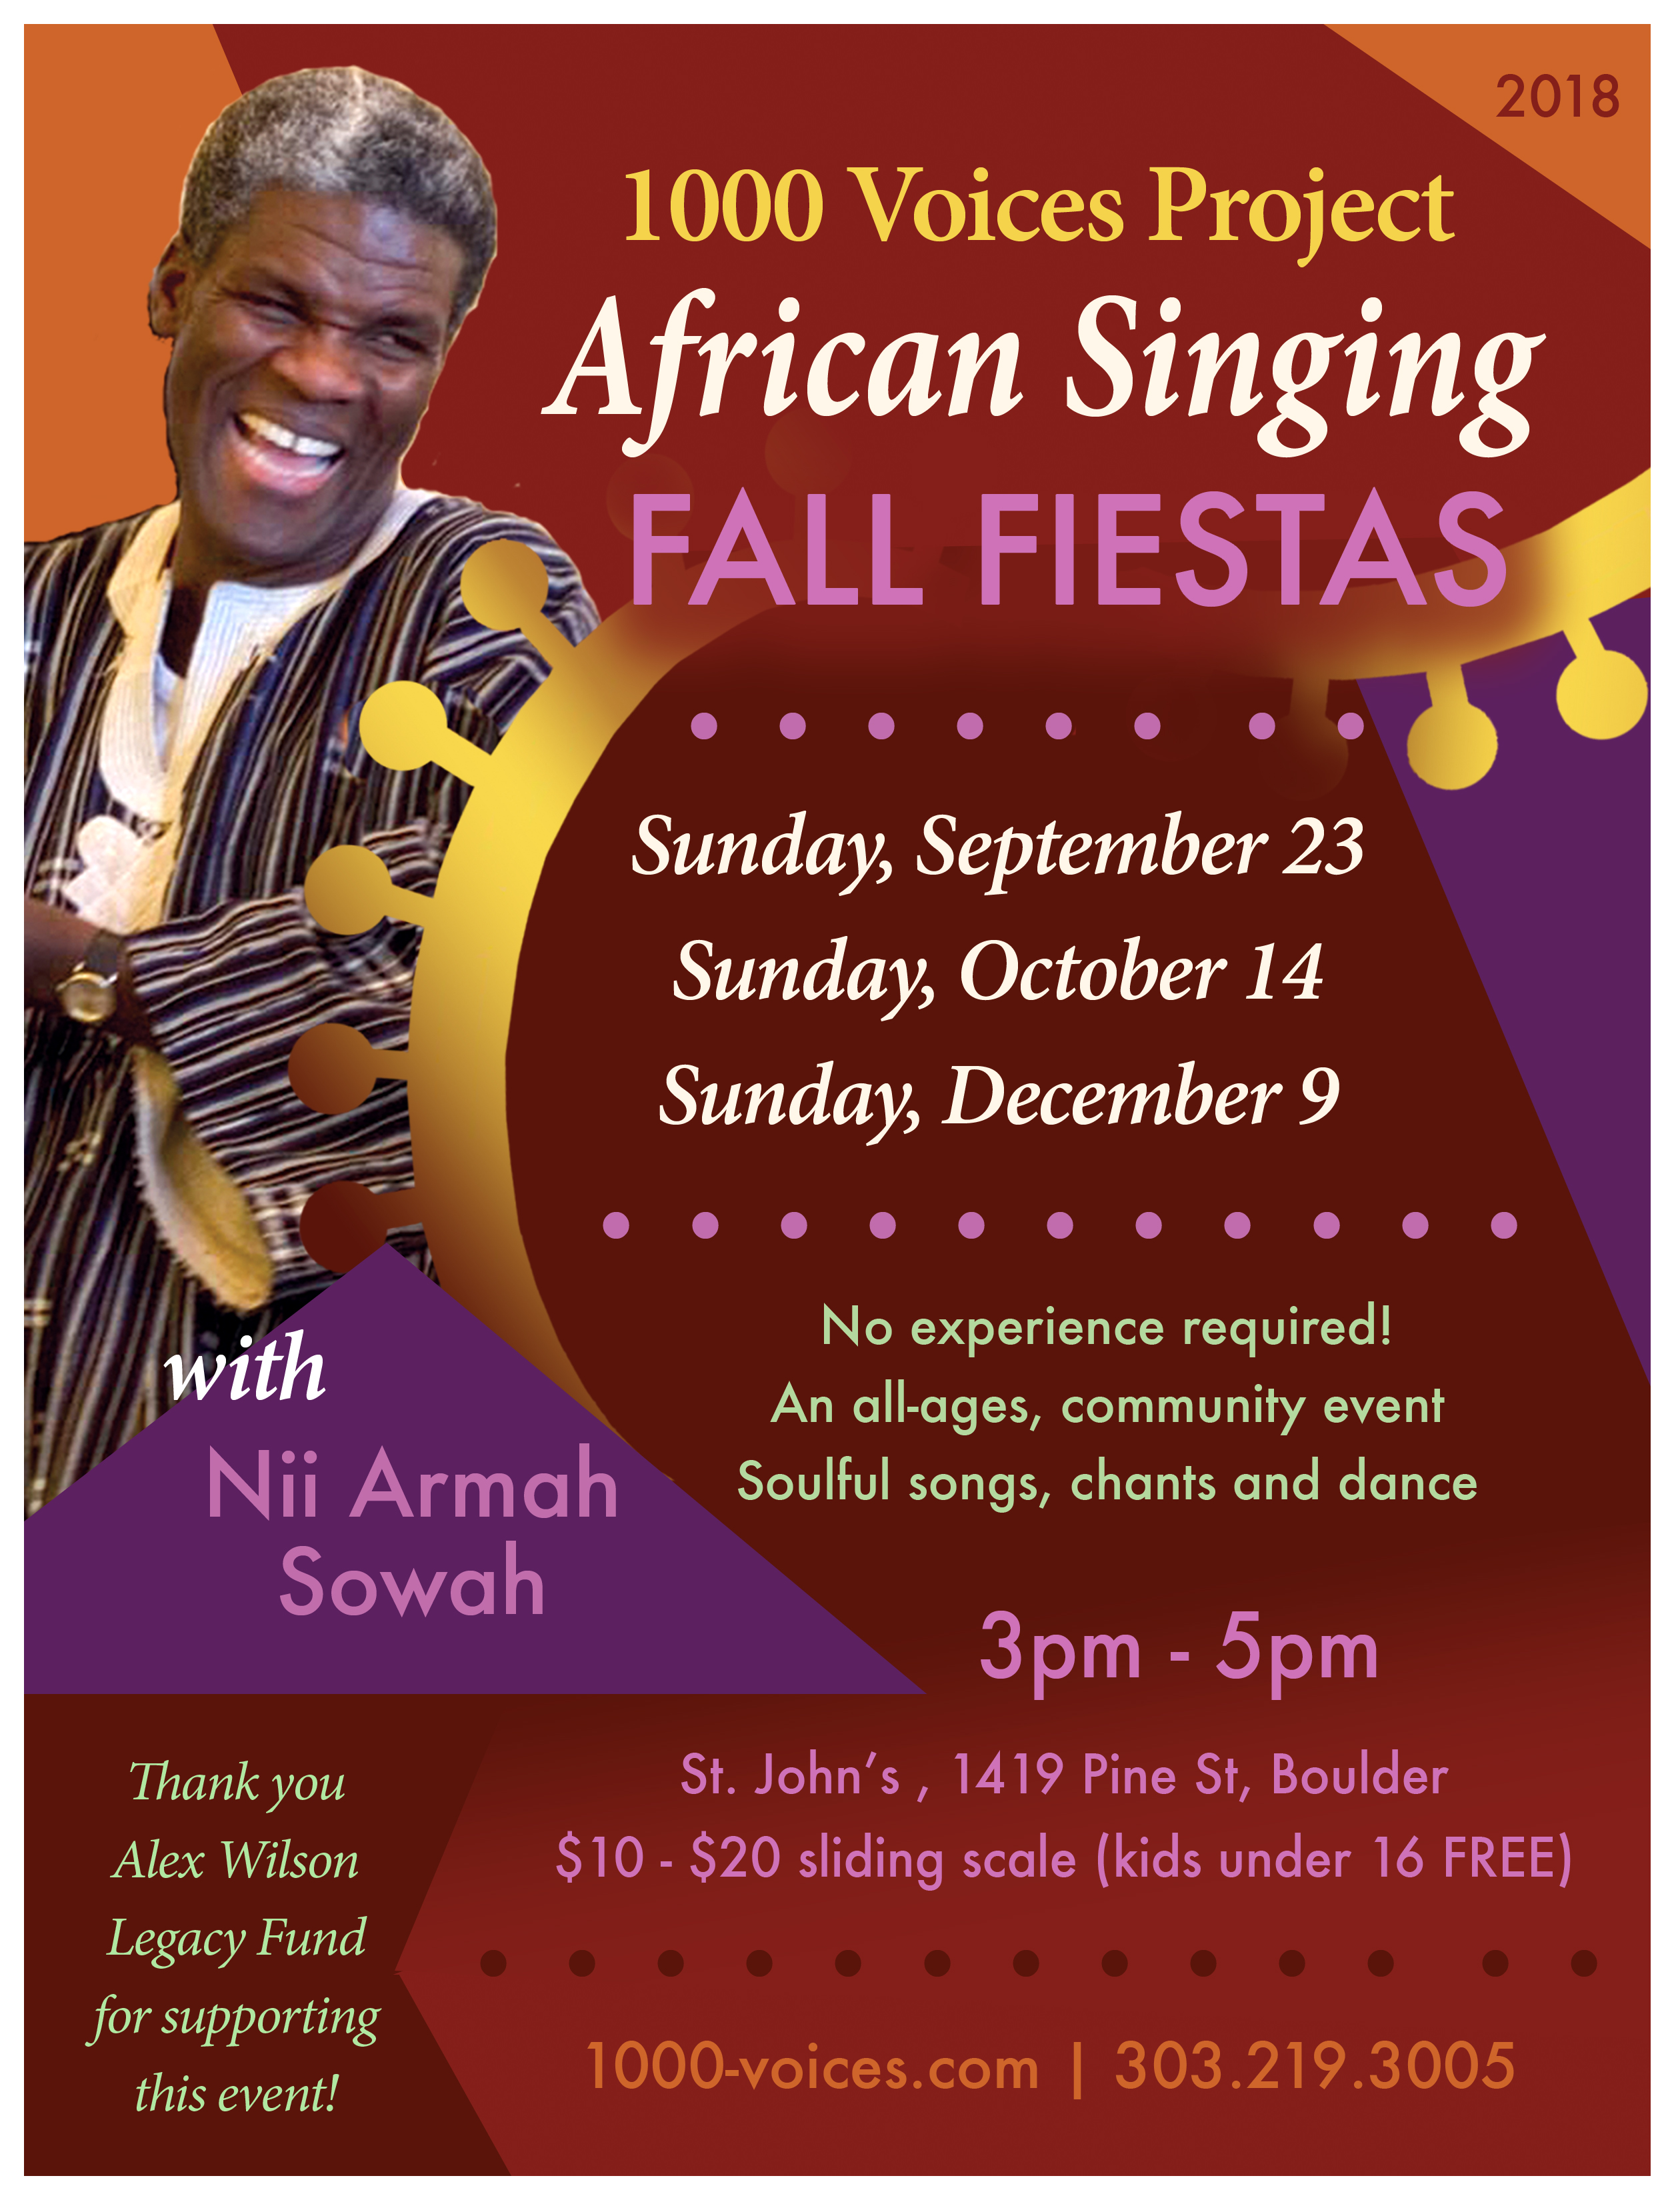 African Singing Fiesta | 1000 Voices - African Singing and